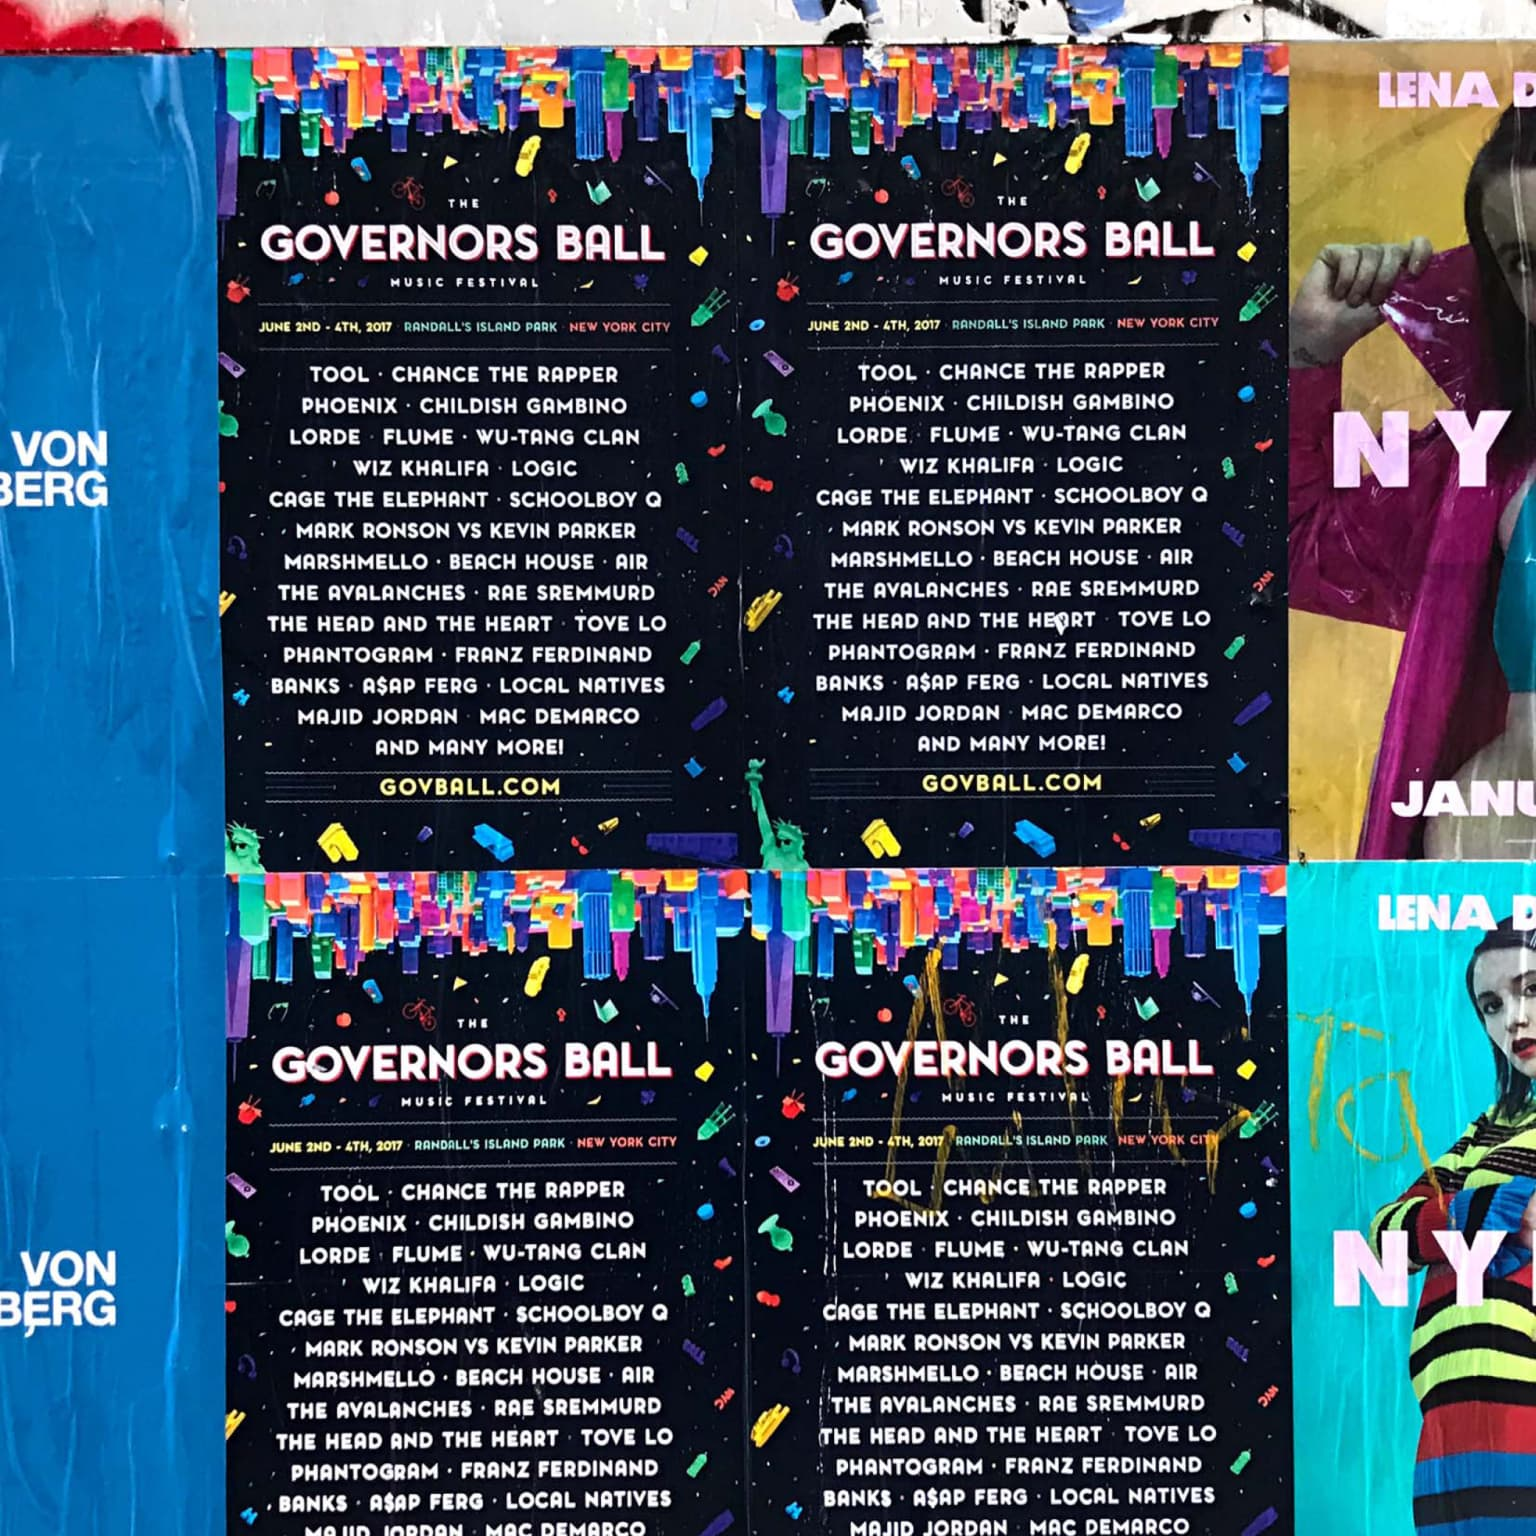 Governors Ball Identity